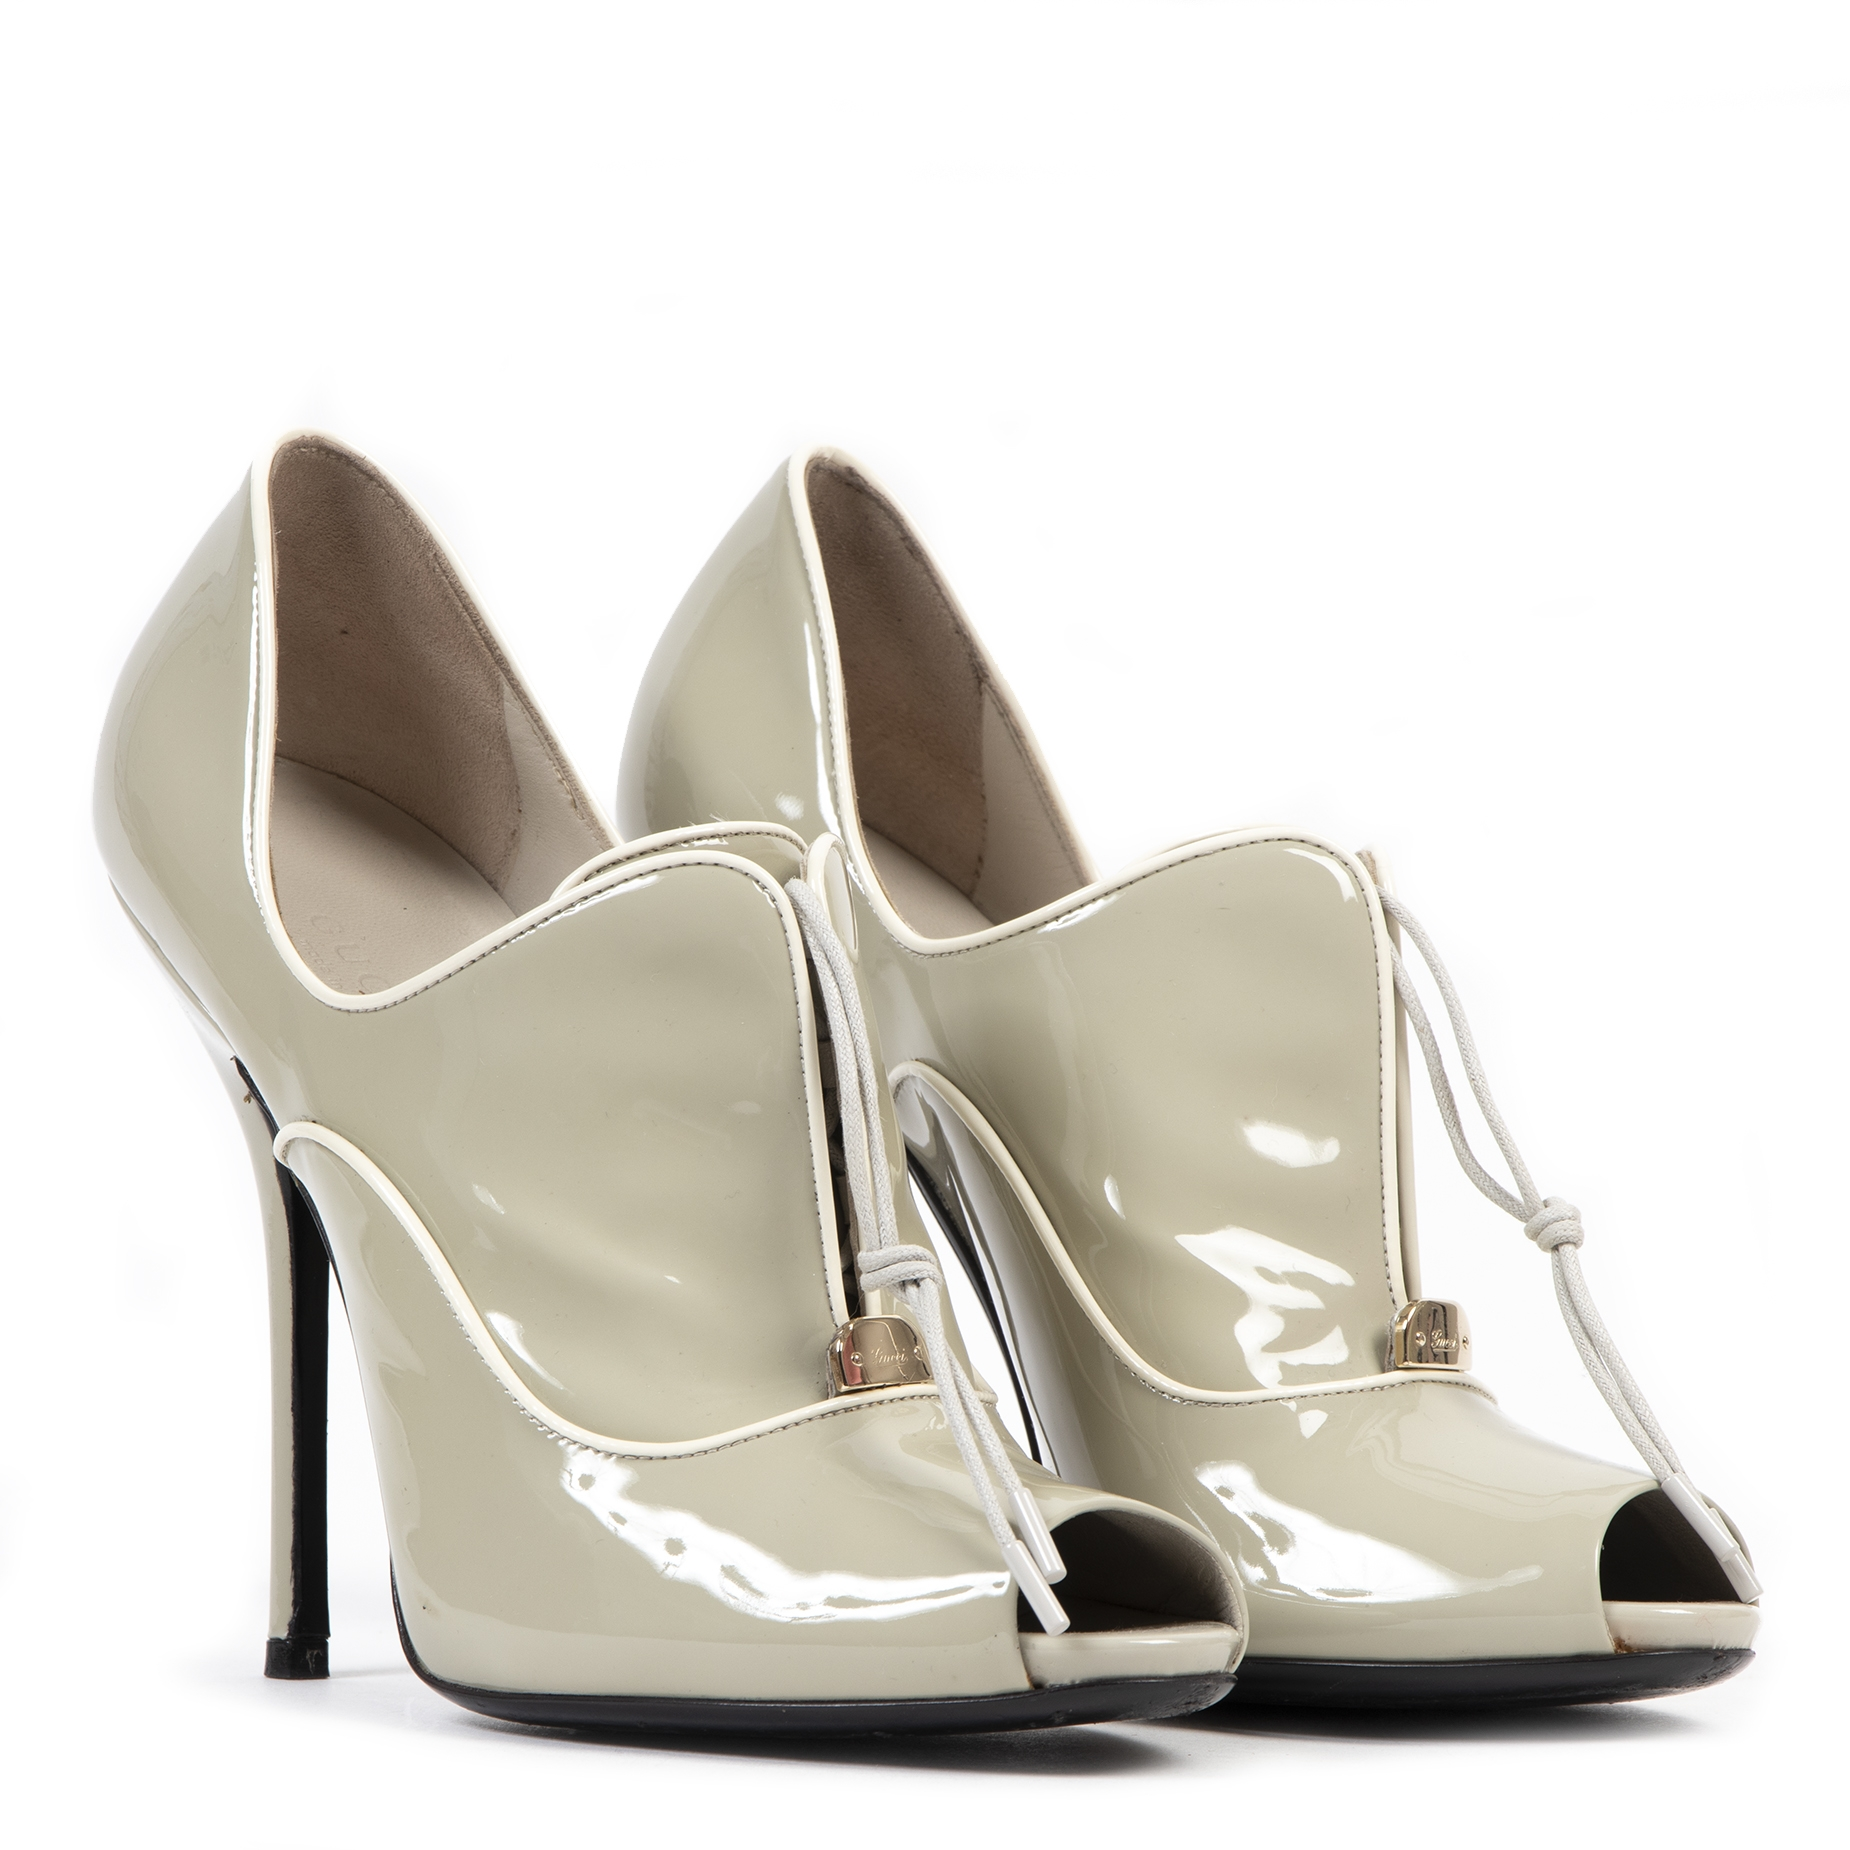 acheter en ligne seconde main Gucci Grey Patent Leather Heels - Size 38,5